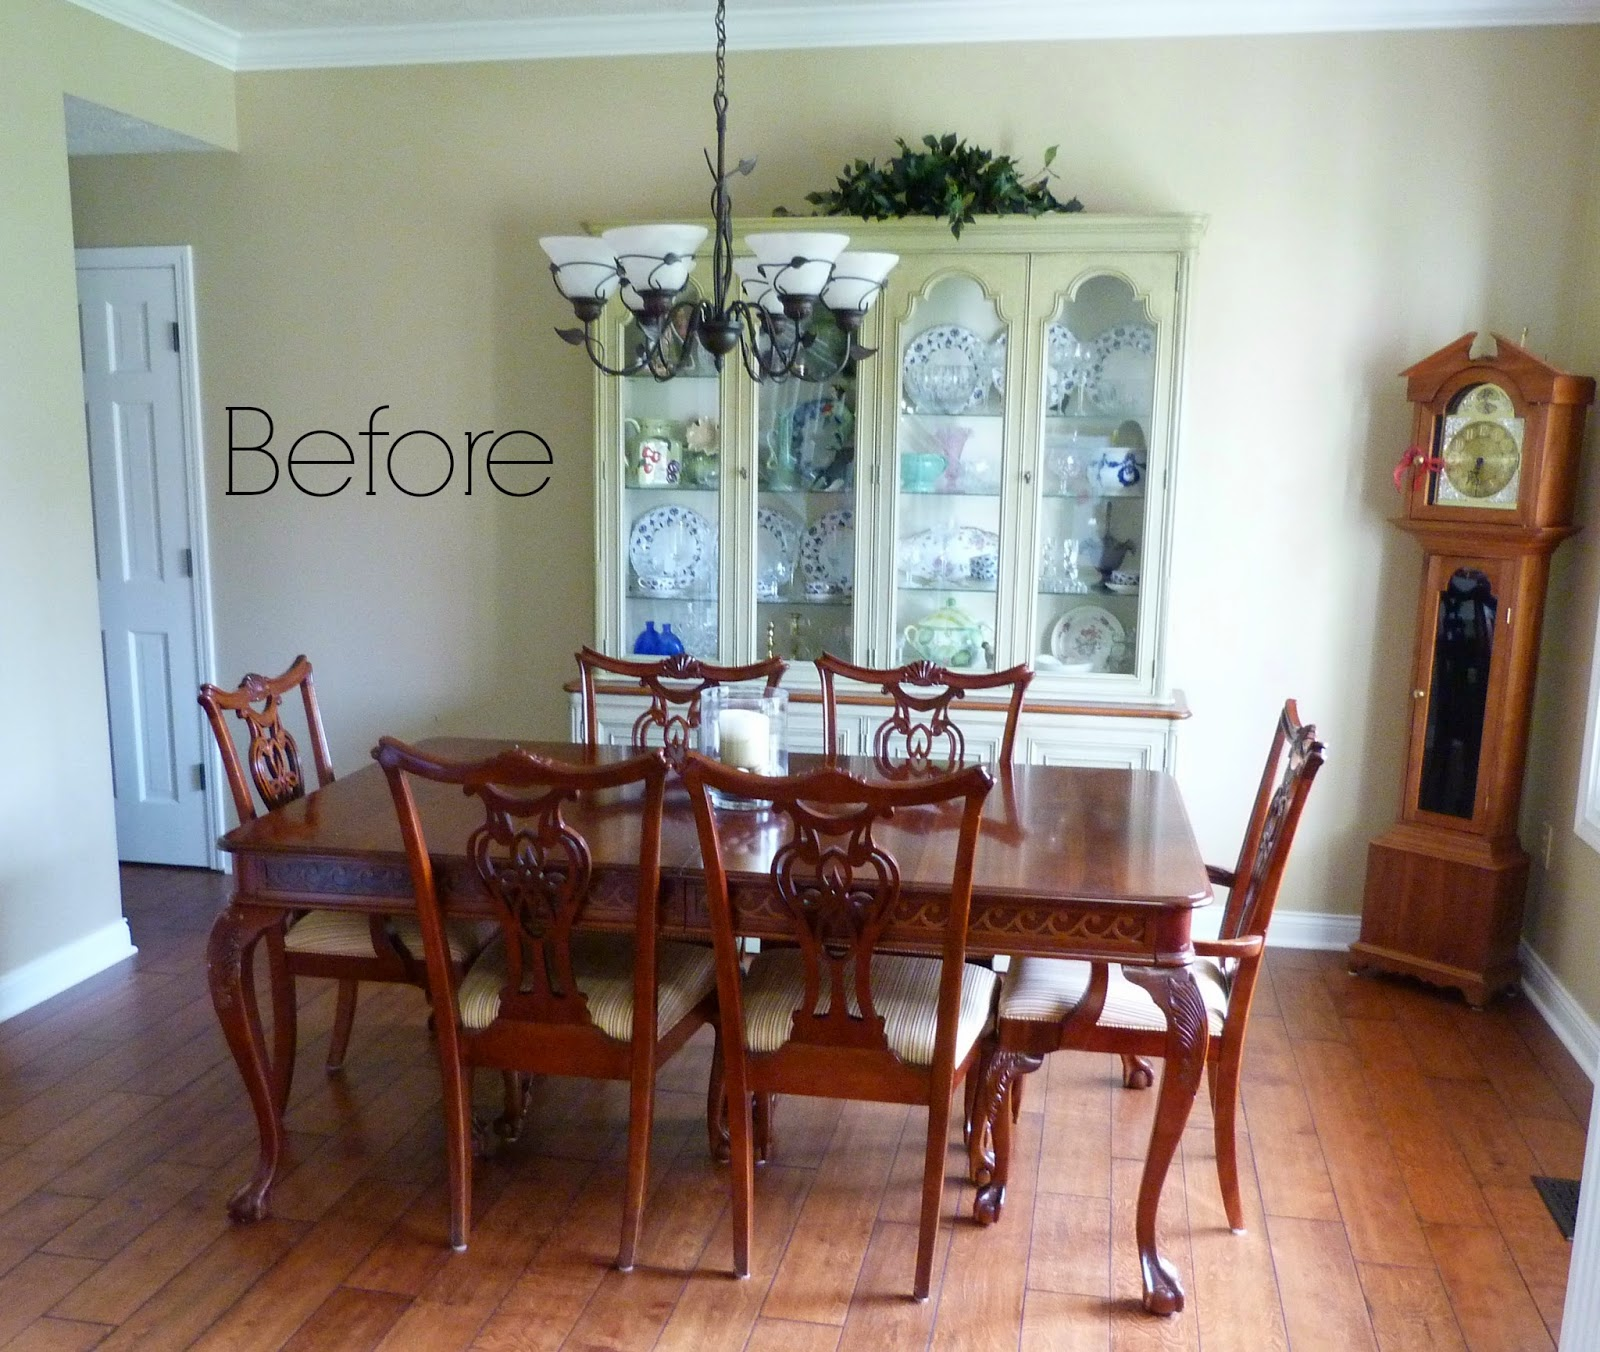 They Were Fortunate To Be Given This Very Nice, Dining Set And China  Cabinet From Her Mom. It Is Beautifully Made, Valuable Furniture And So The  Plan Was To ...